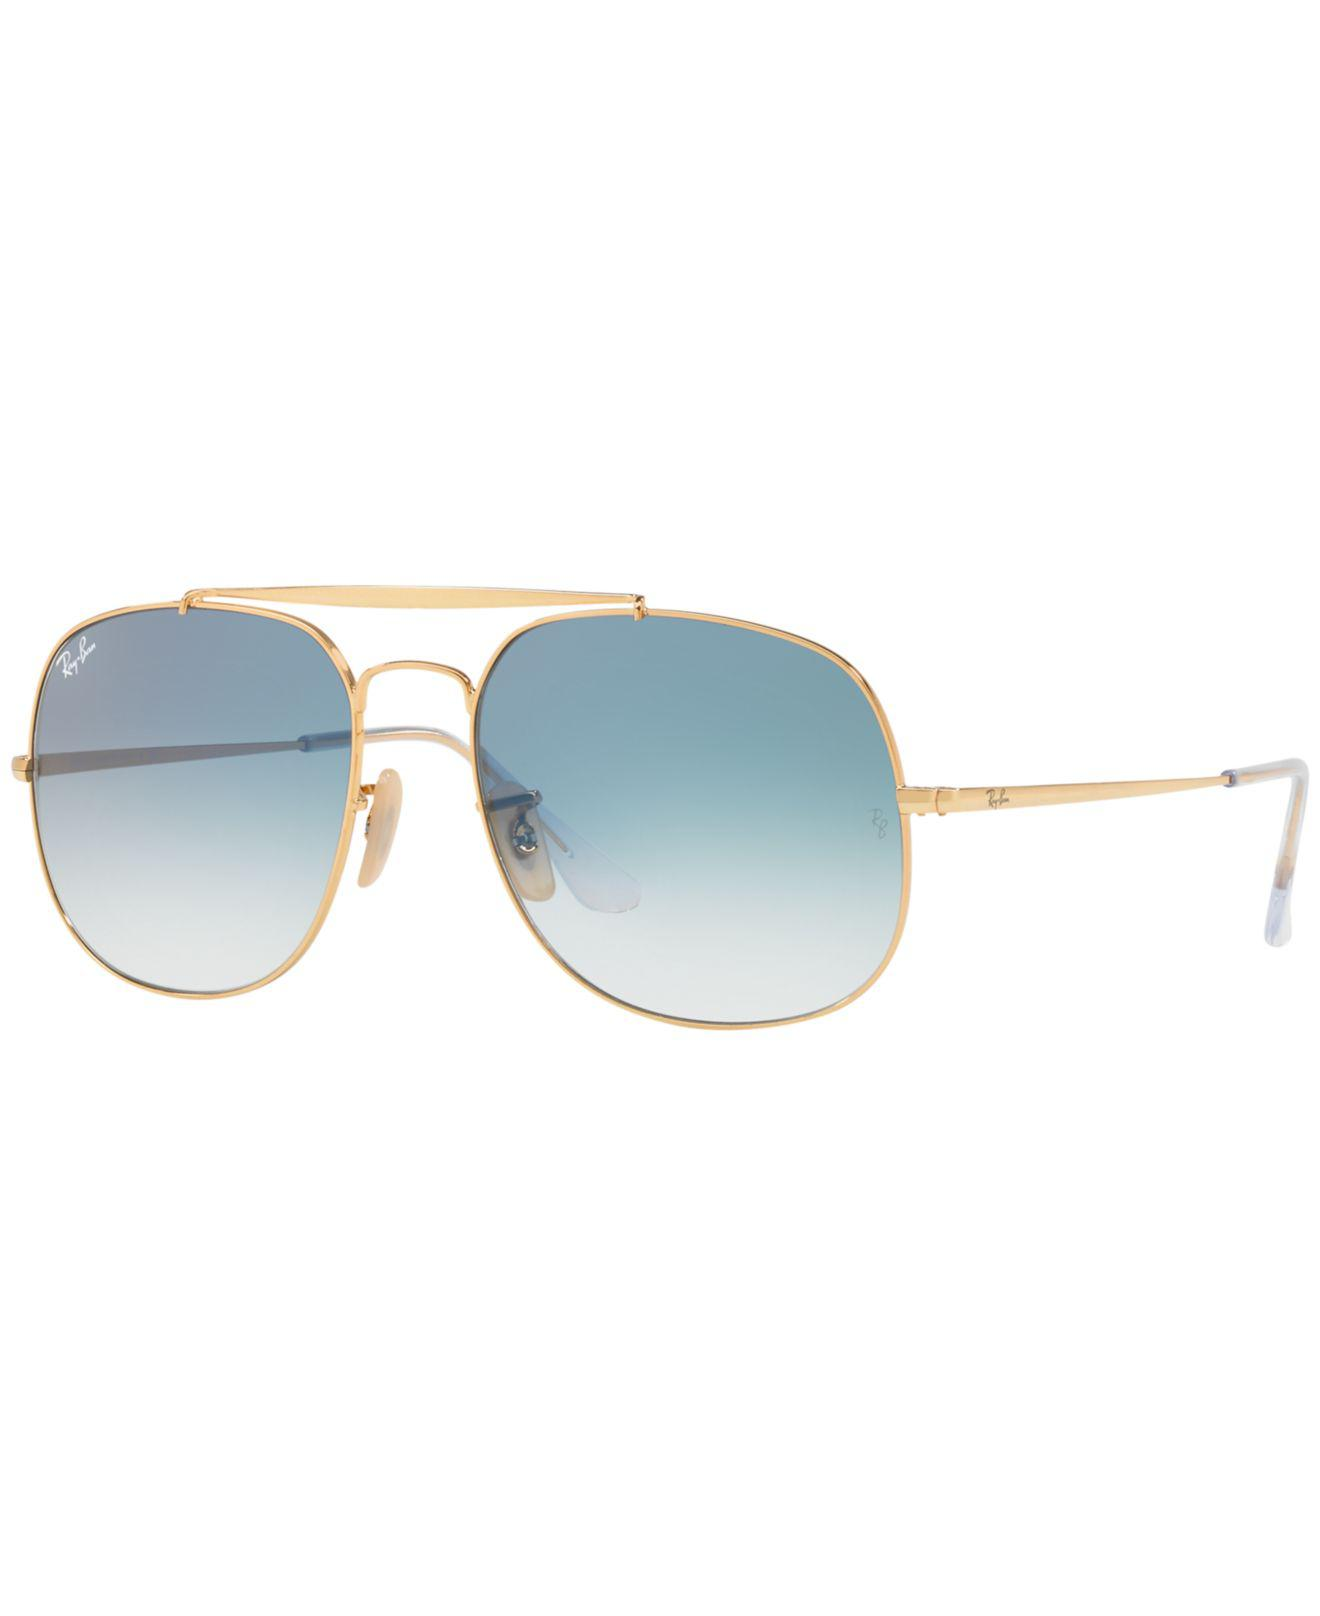 806650ce461 Lyst - Ray-Ban The General Sunglasses